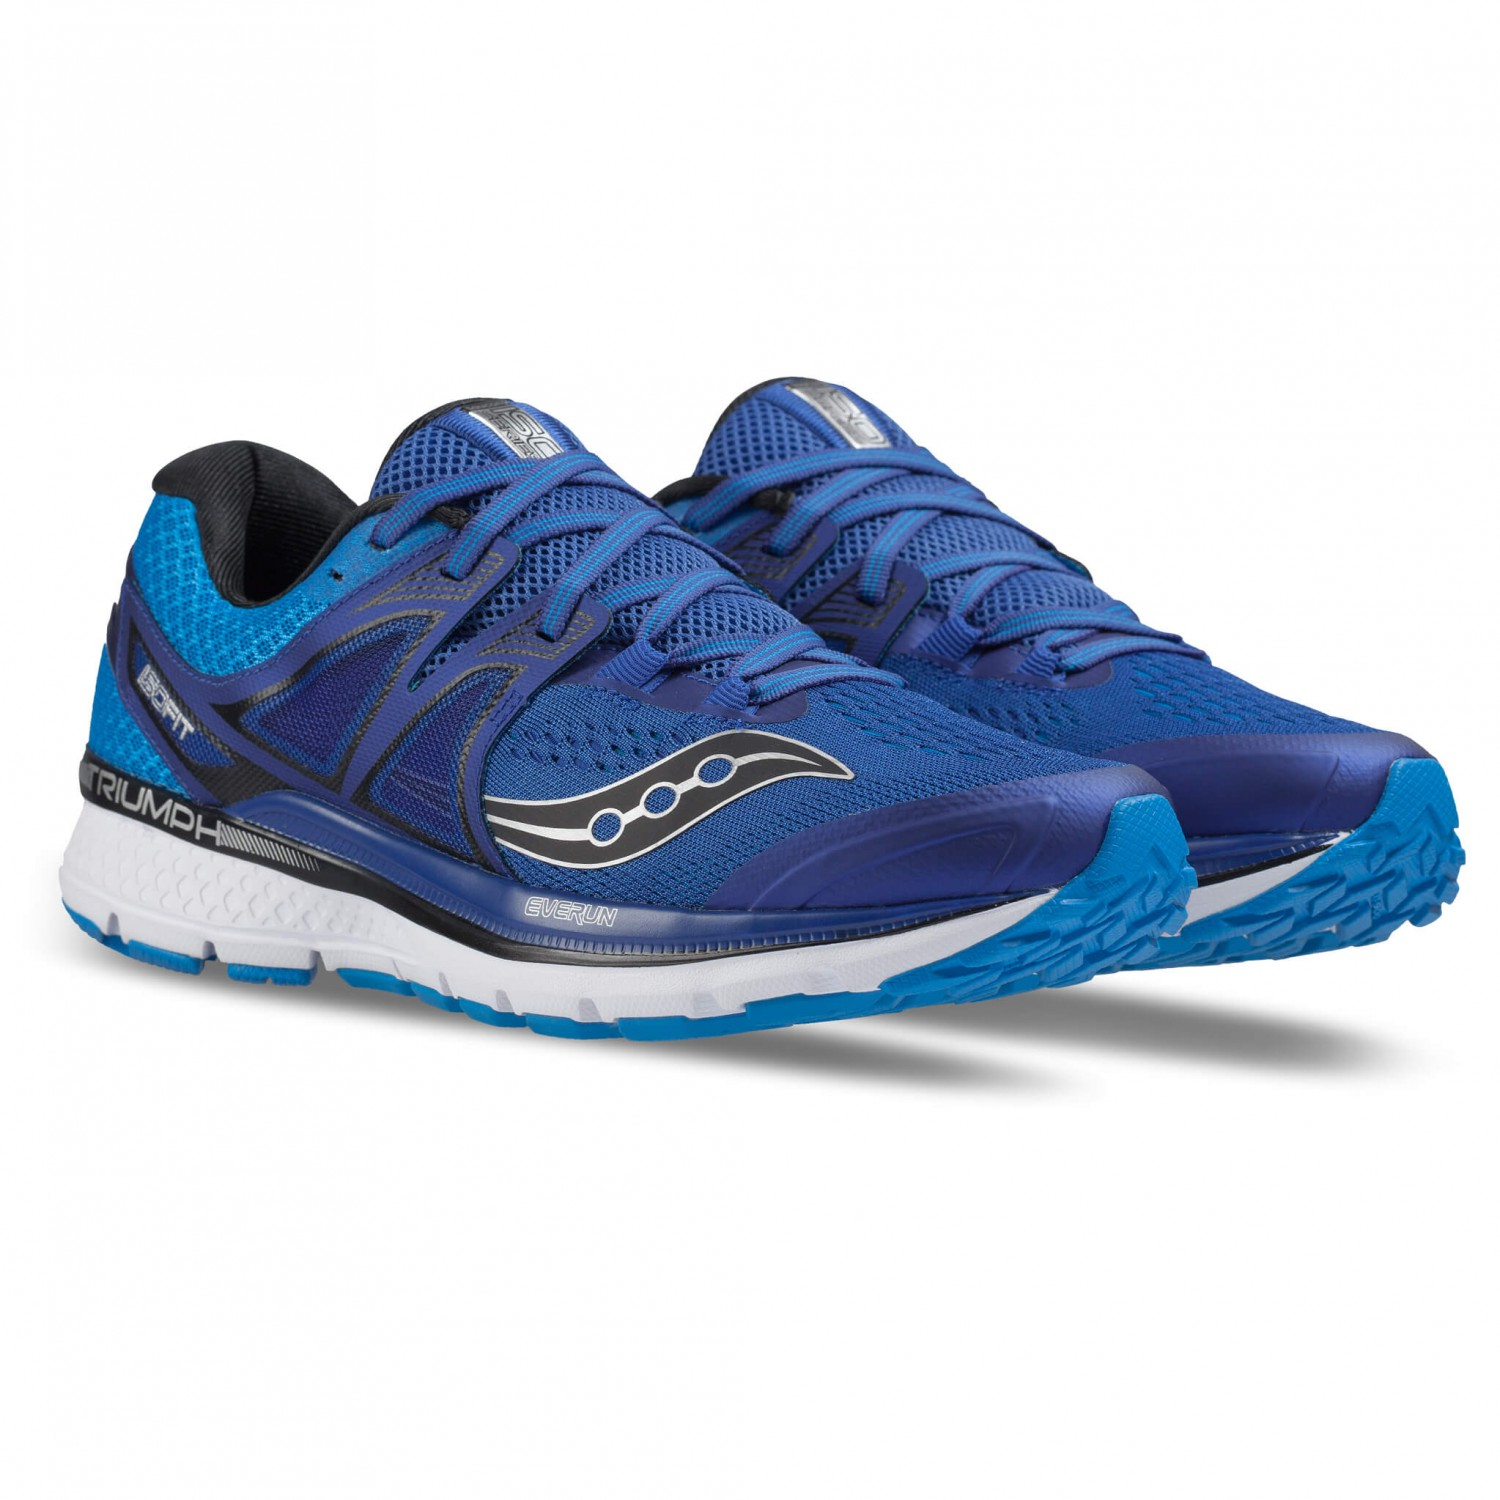 Can I Use Running Shoes For Trekking